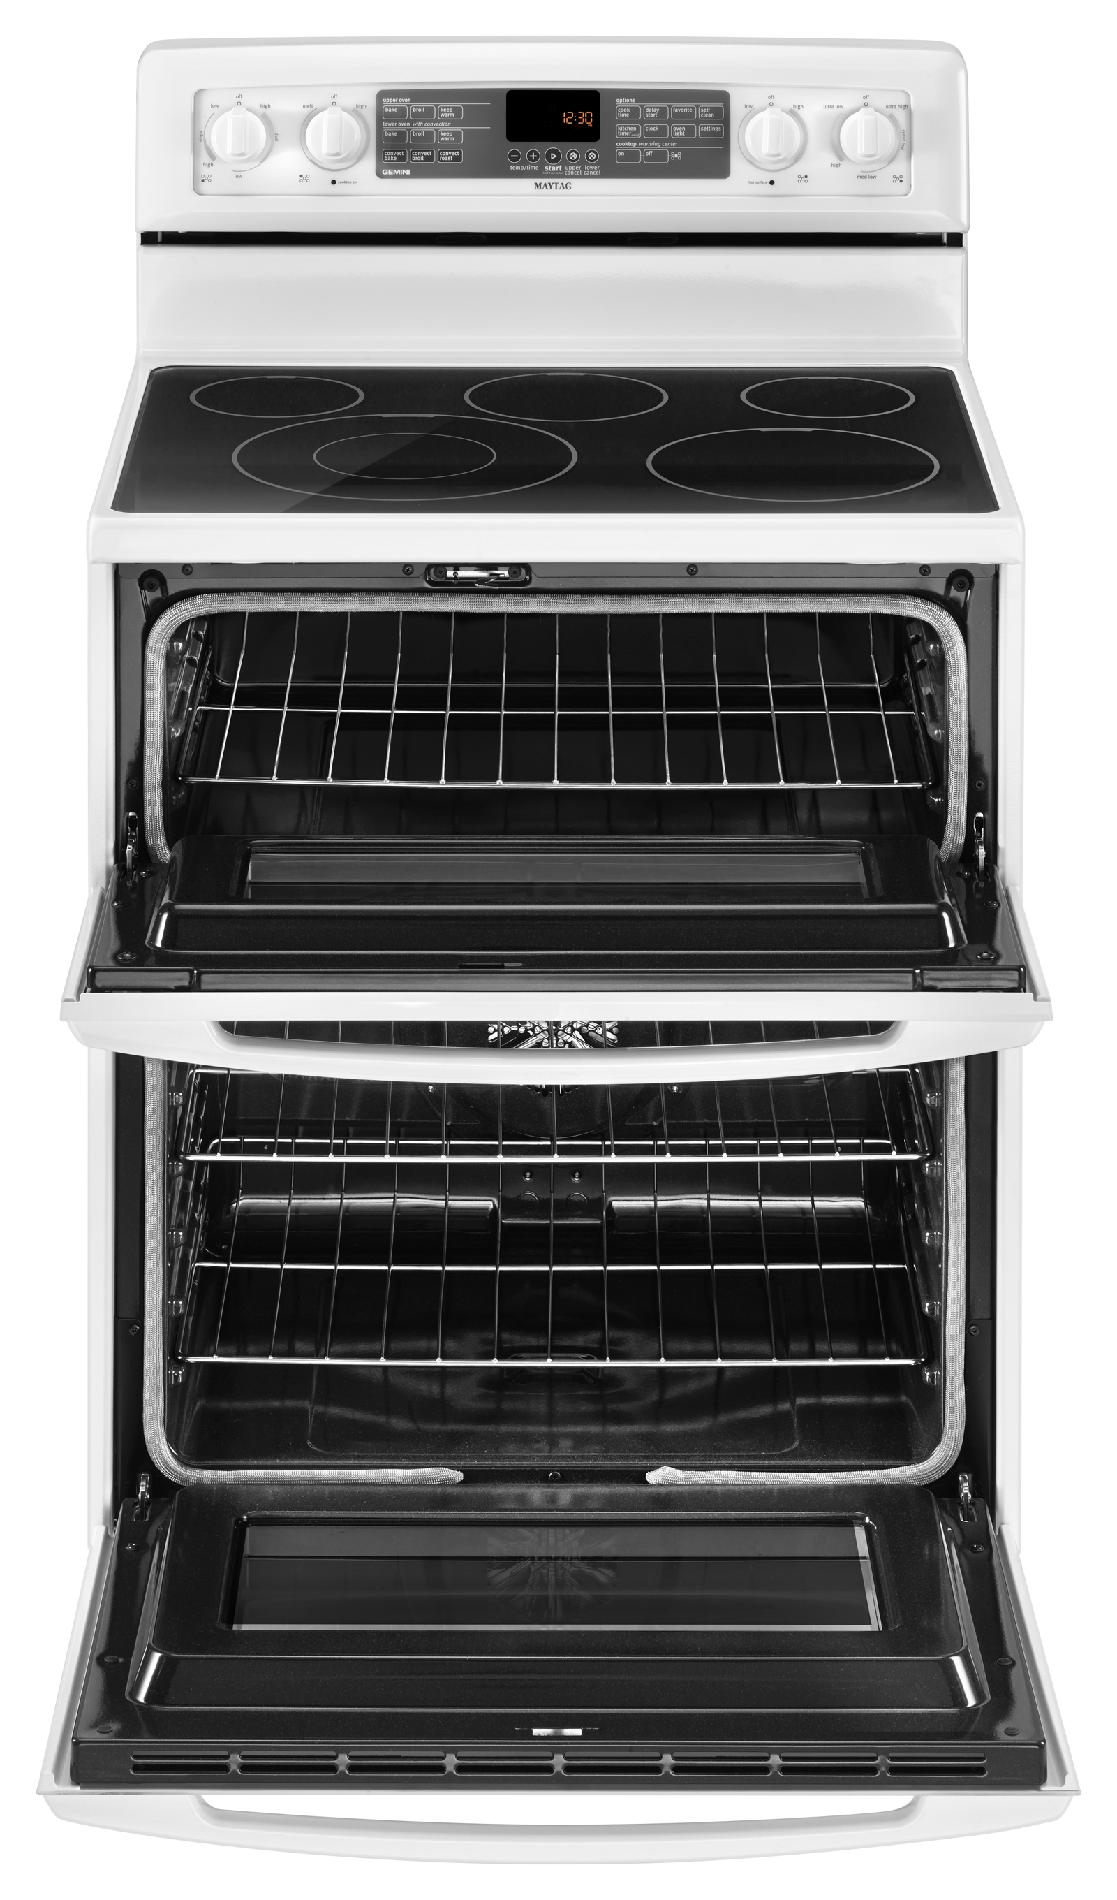 "Maytag 30"" Electric Range w/ Even-Air™ Convection - White"